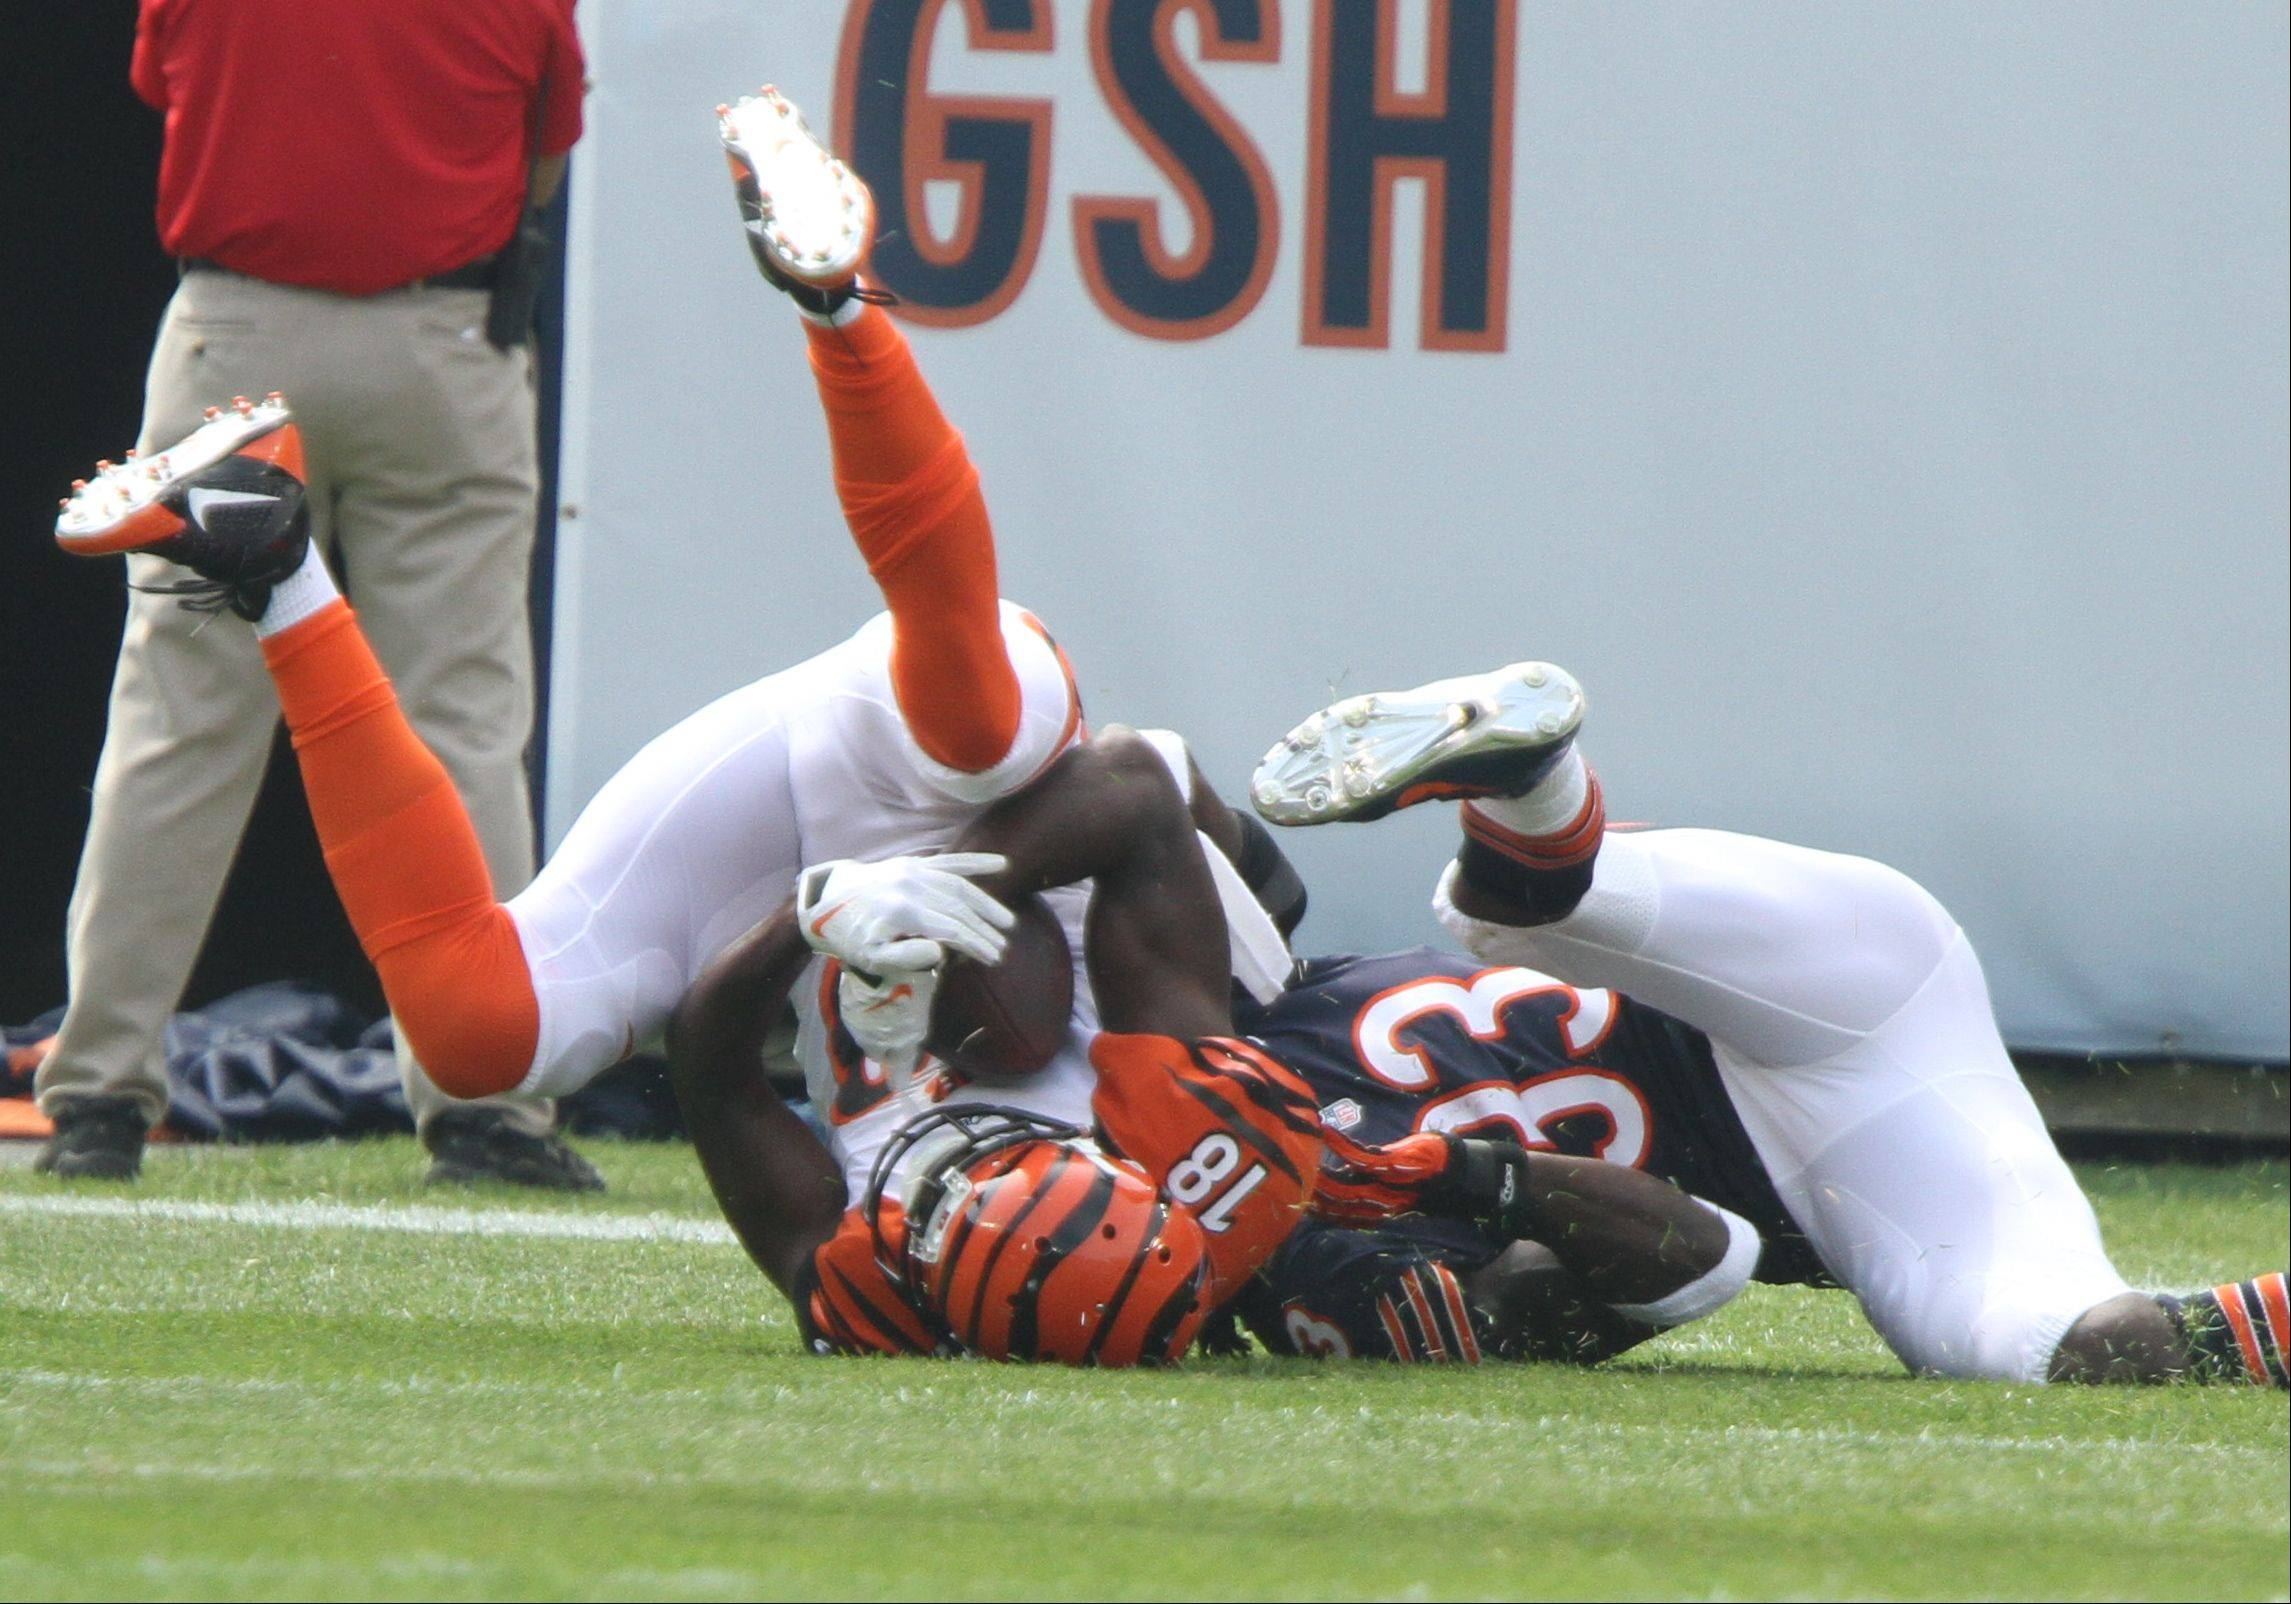 Cincinnati Bengals wide receiver A.J. Green makes a catch on Chicago Bears cornerback Charles Tillman Sunday at Soldier Field in Chicago.